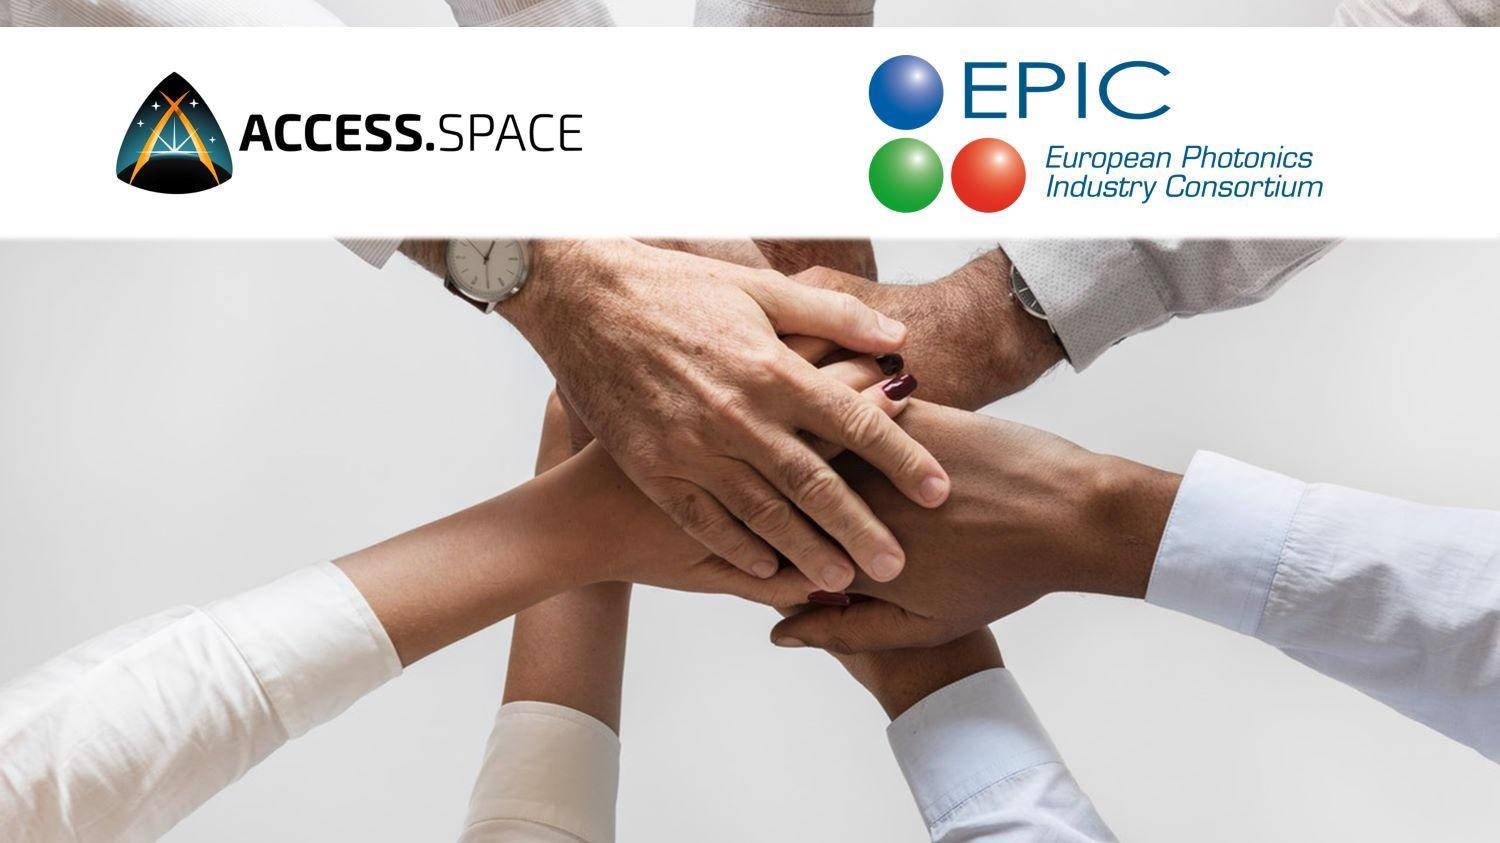 MoU ACCESS.SPACE Alliance-EPIC to Strengthen the Photonics and New Space Industries